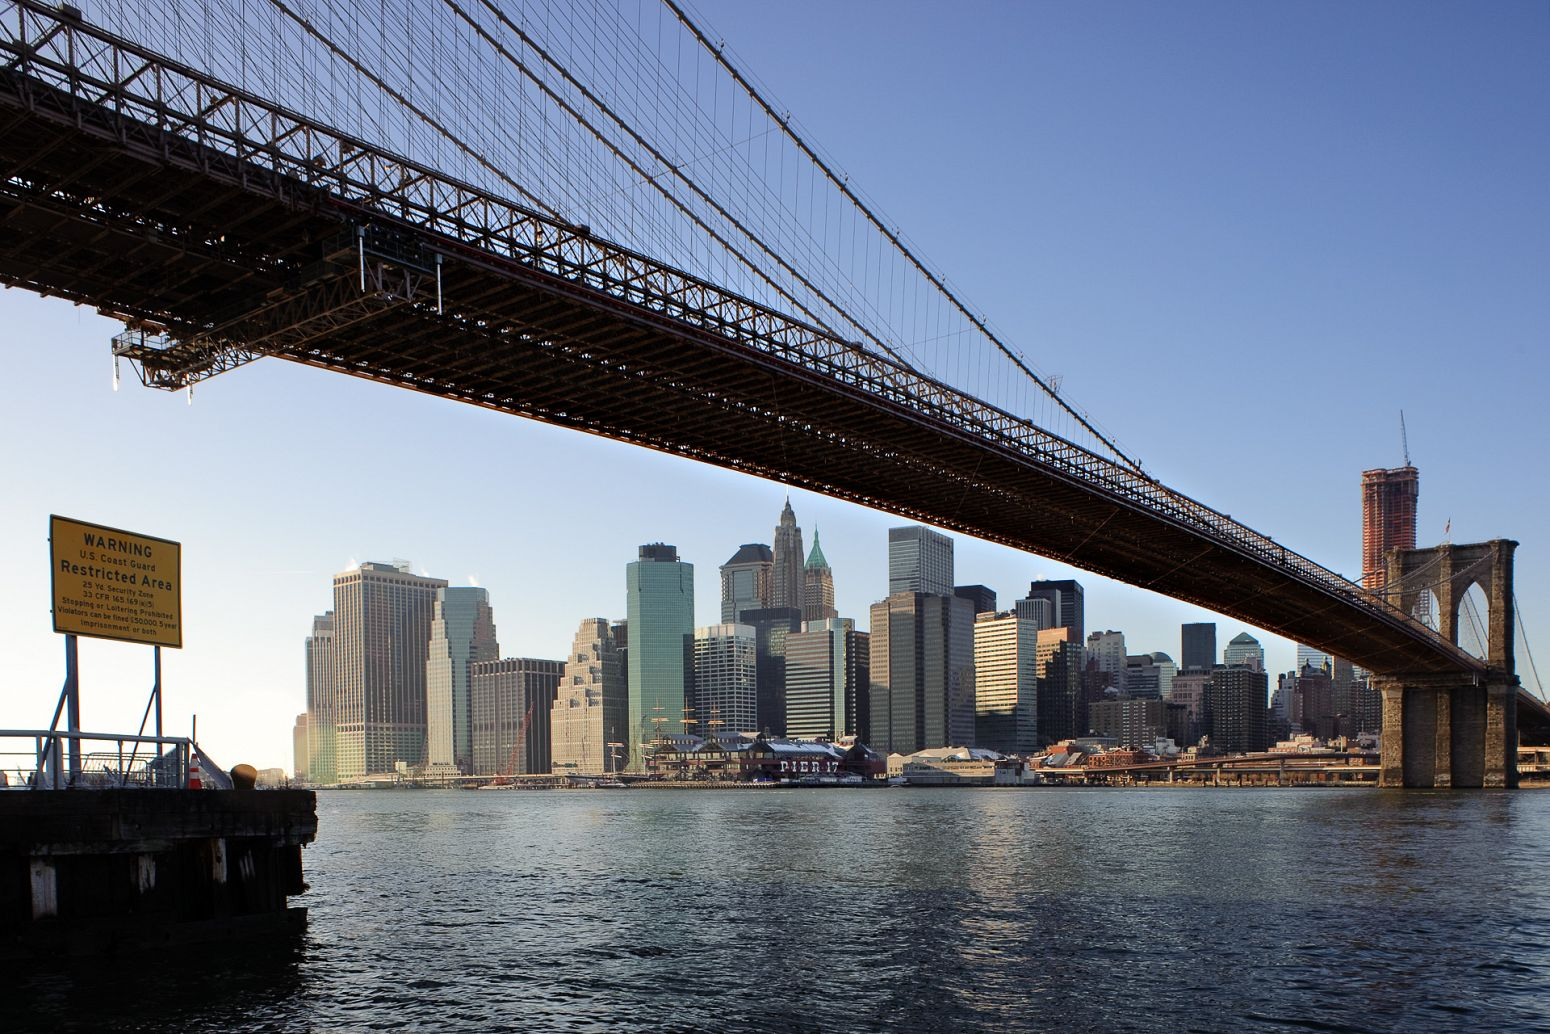 Manhattan and the Brooklyn Bridge from Empire Fulton Ferry, New York, USA